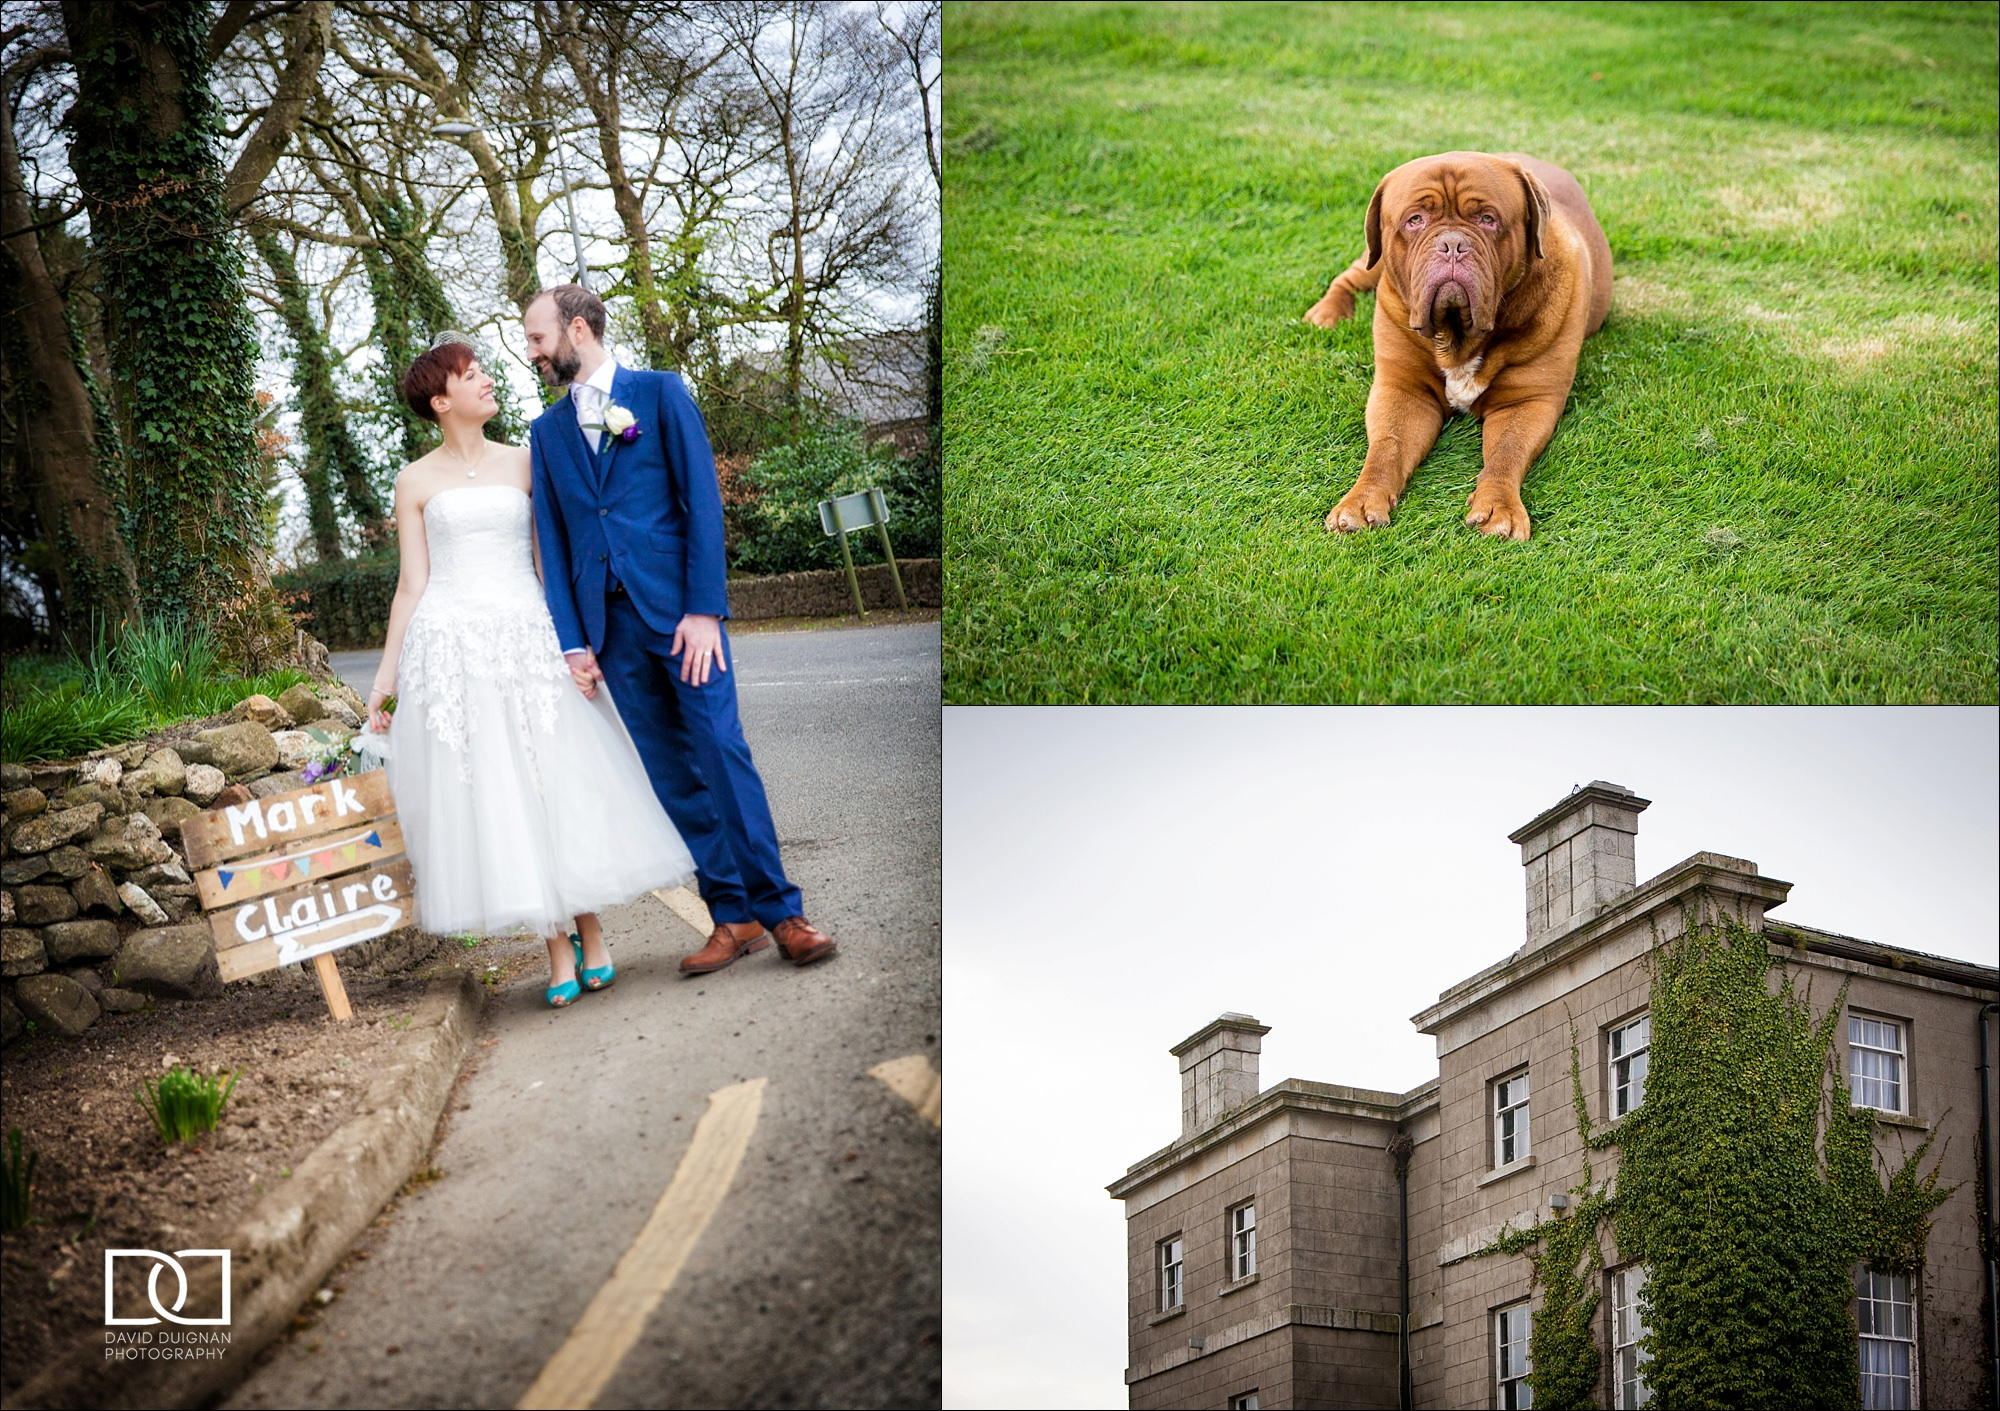 dublin wedding photographer david duignan photography horetown house wedding wexford Ireland 0024